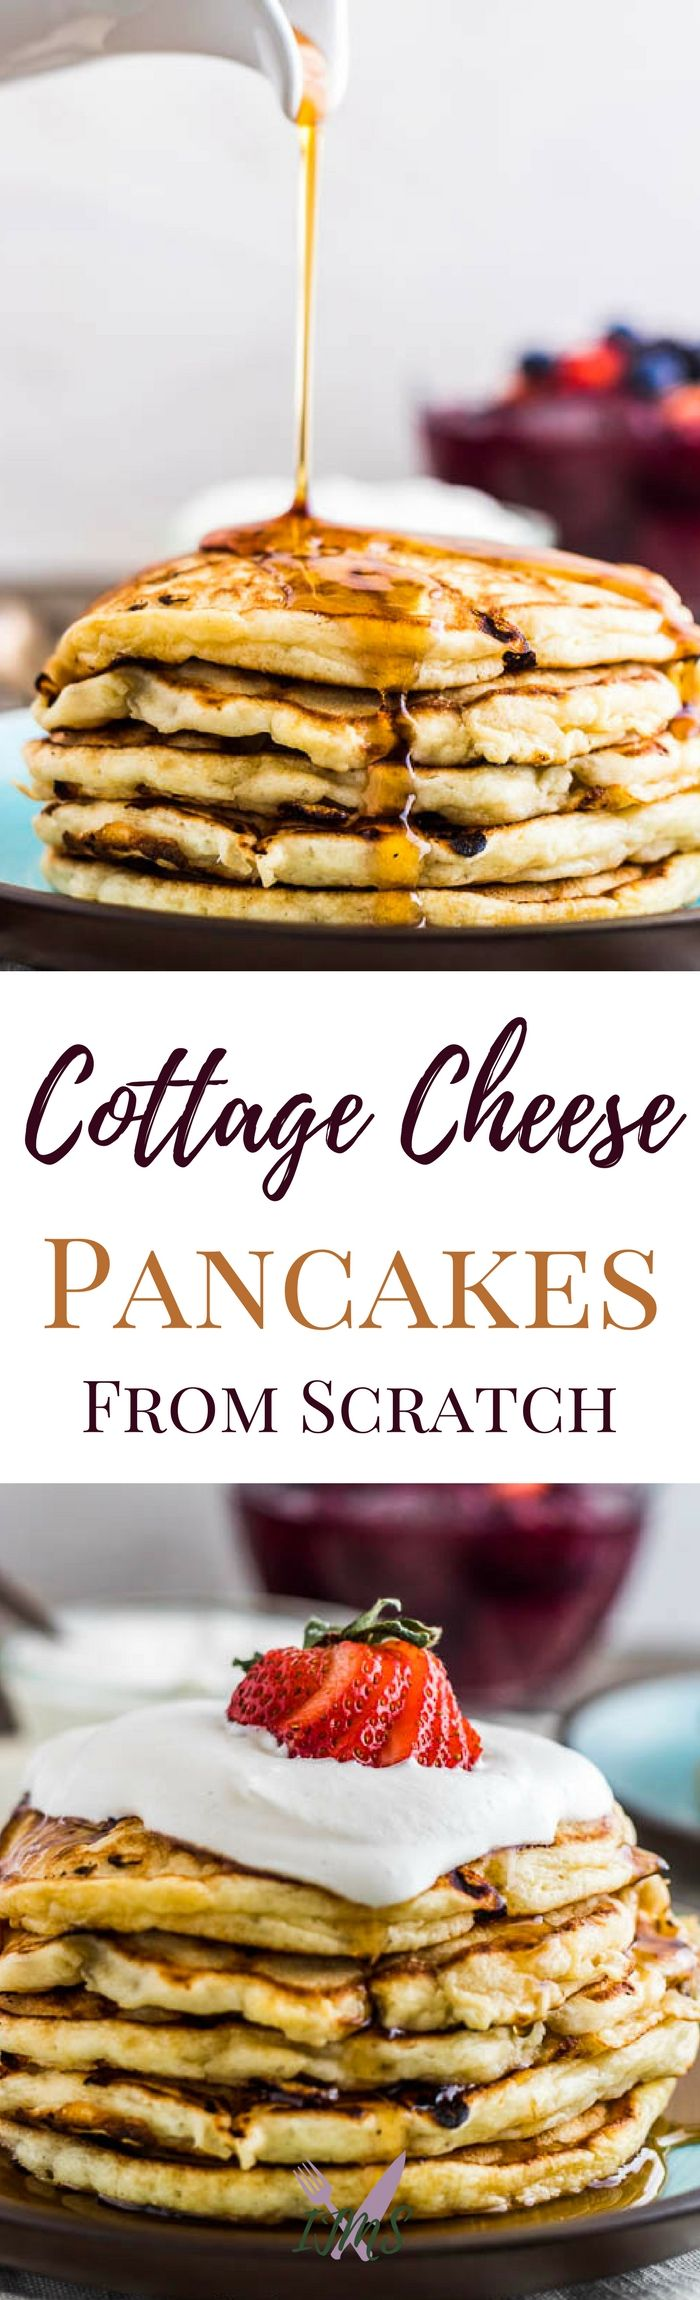 Cottage Cheese Pancakes are the best breakfast. Quick and easy to make, with protein bits inside, topped with fresh whipped cream and maple syrup or a fruit sauce and you're on your way to a well-balanced meal! via @ijustmakesandwi